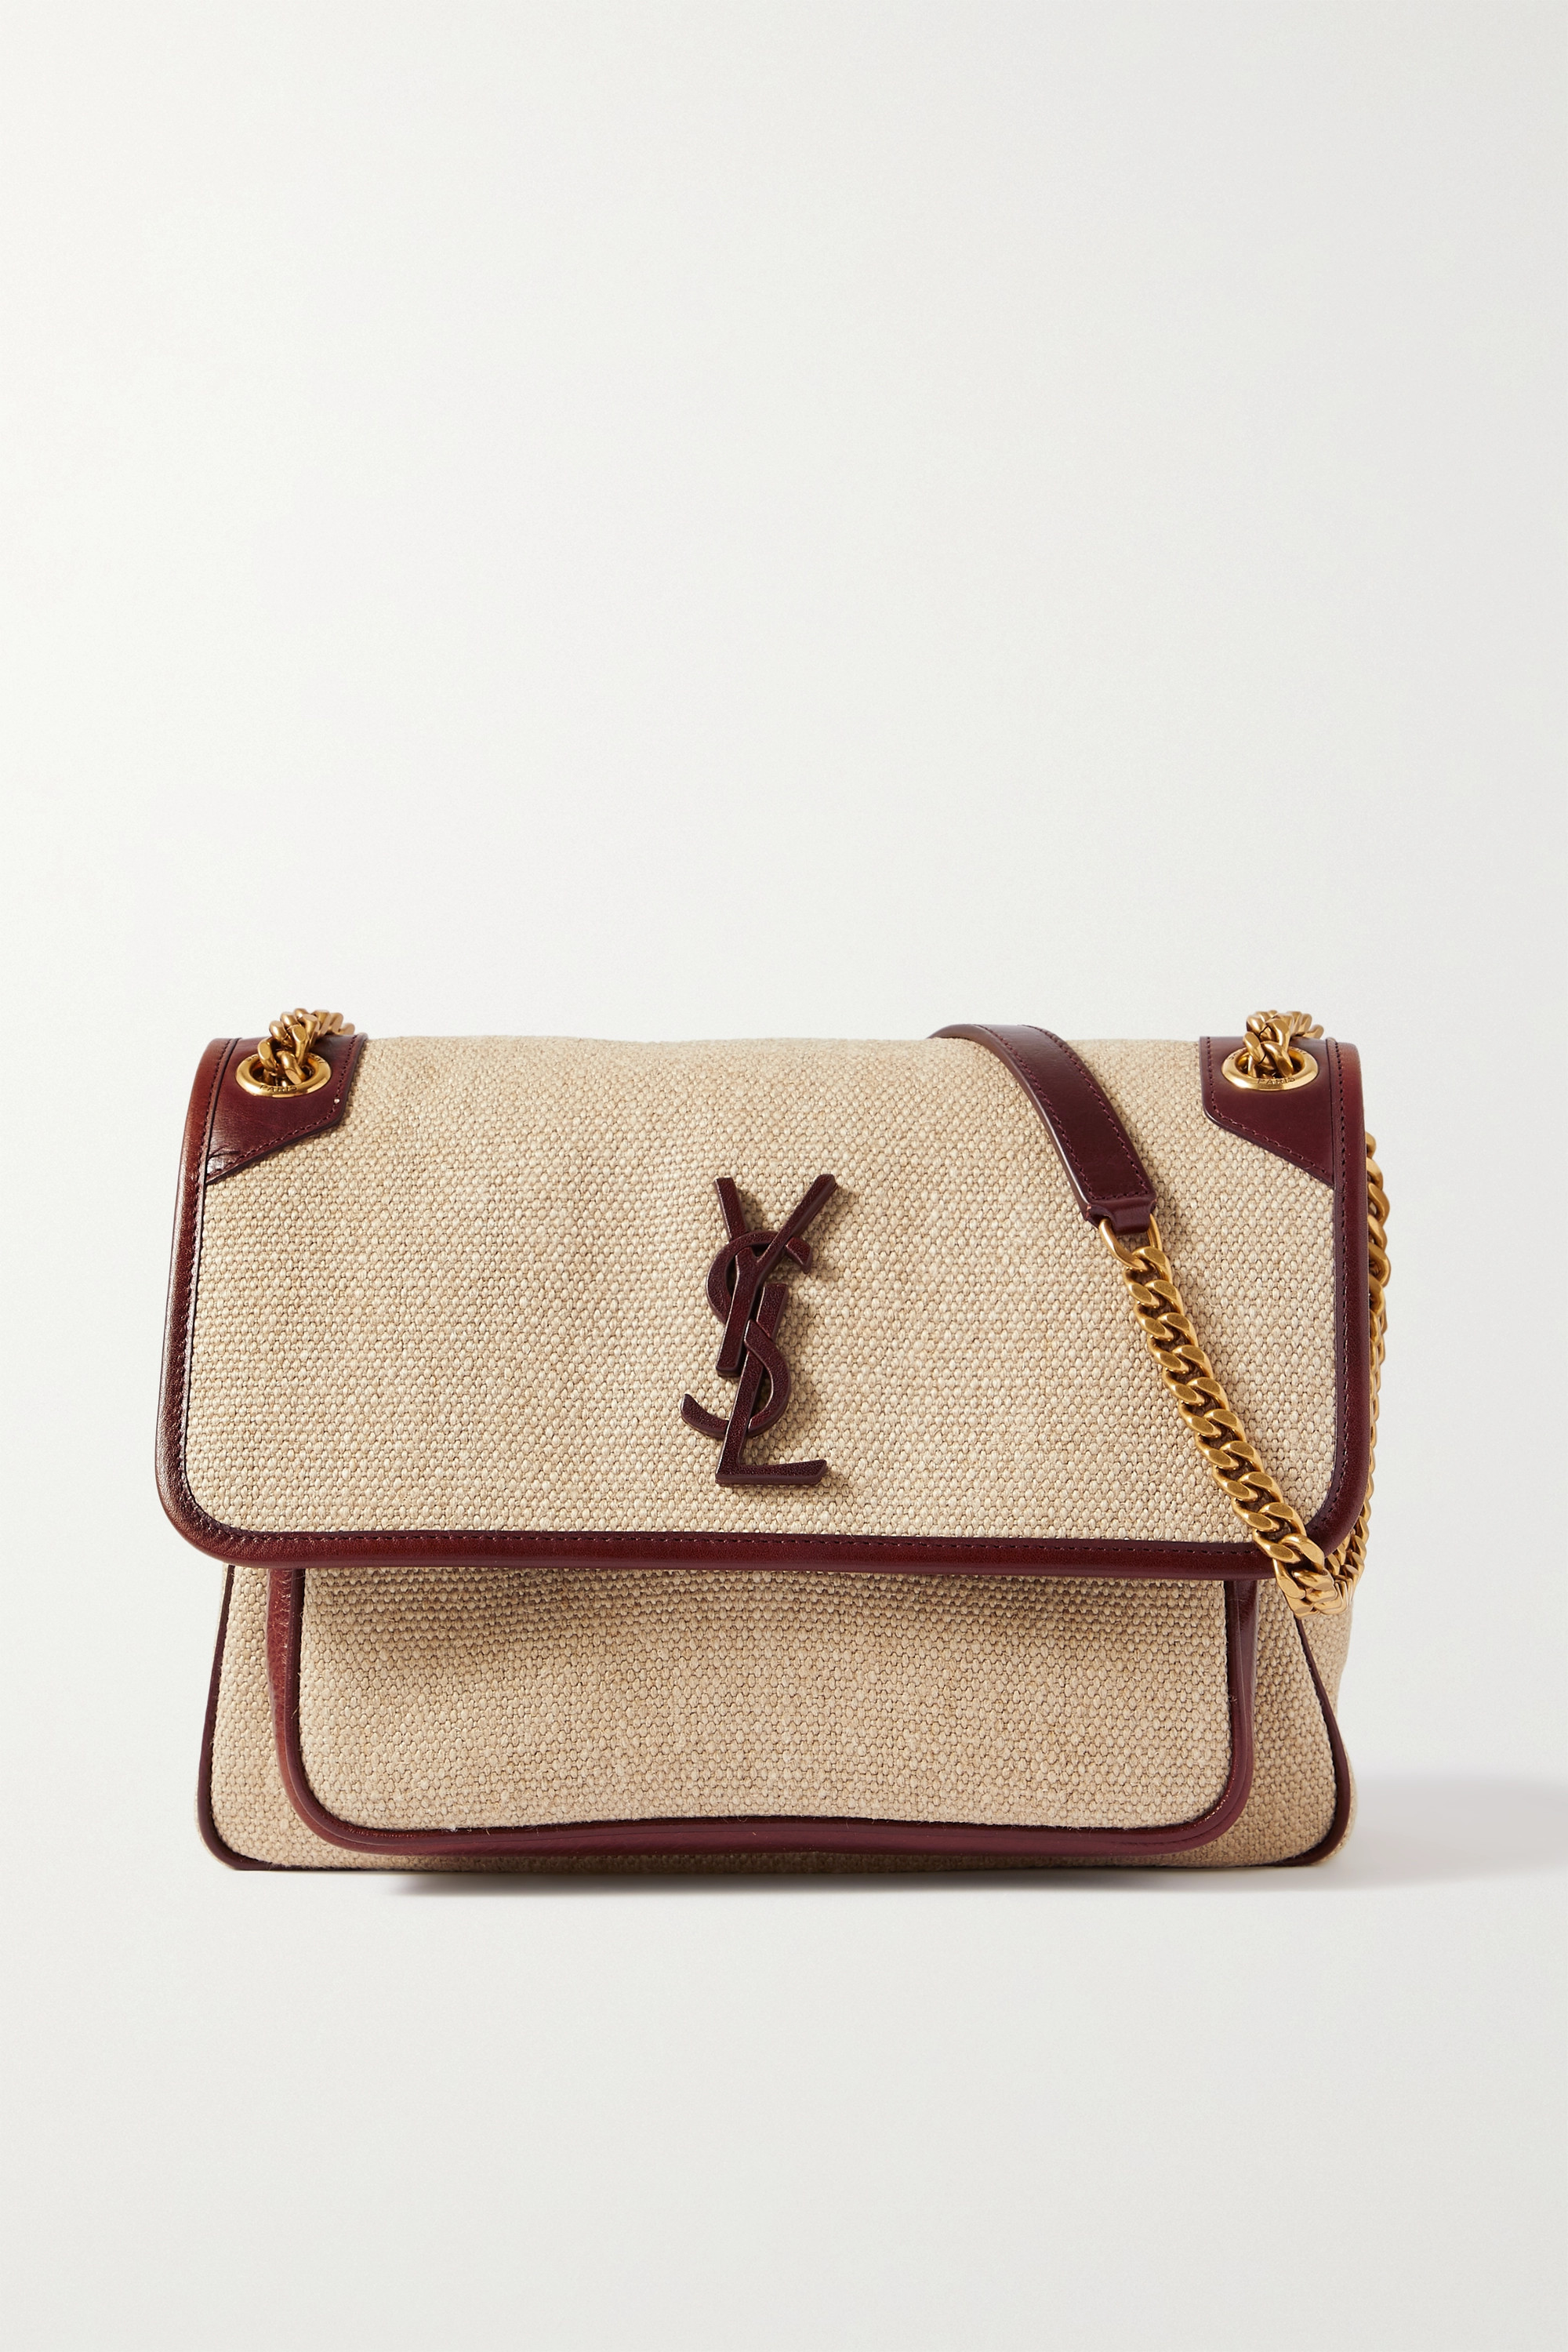 SAINT LAURENT Niki medium leather-trimmed linen-canvas shoulder bag